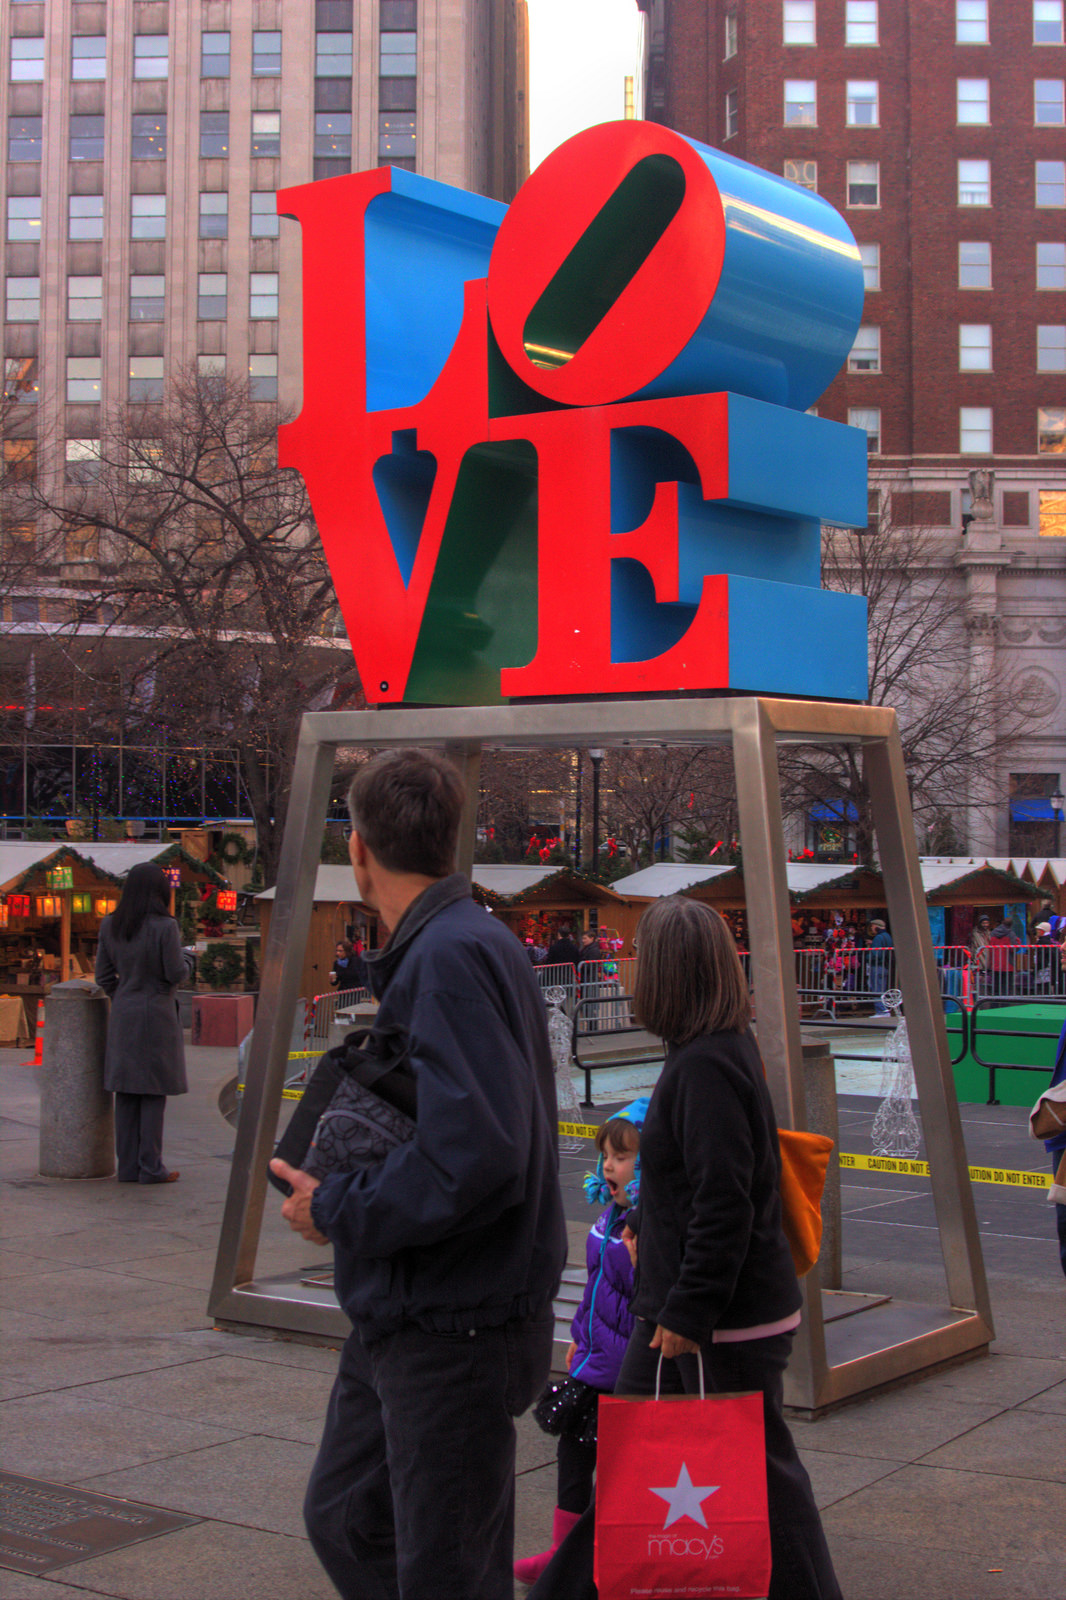 Love in the Afternoon, Tuesday, December 3, 2013